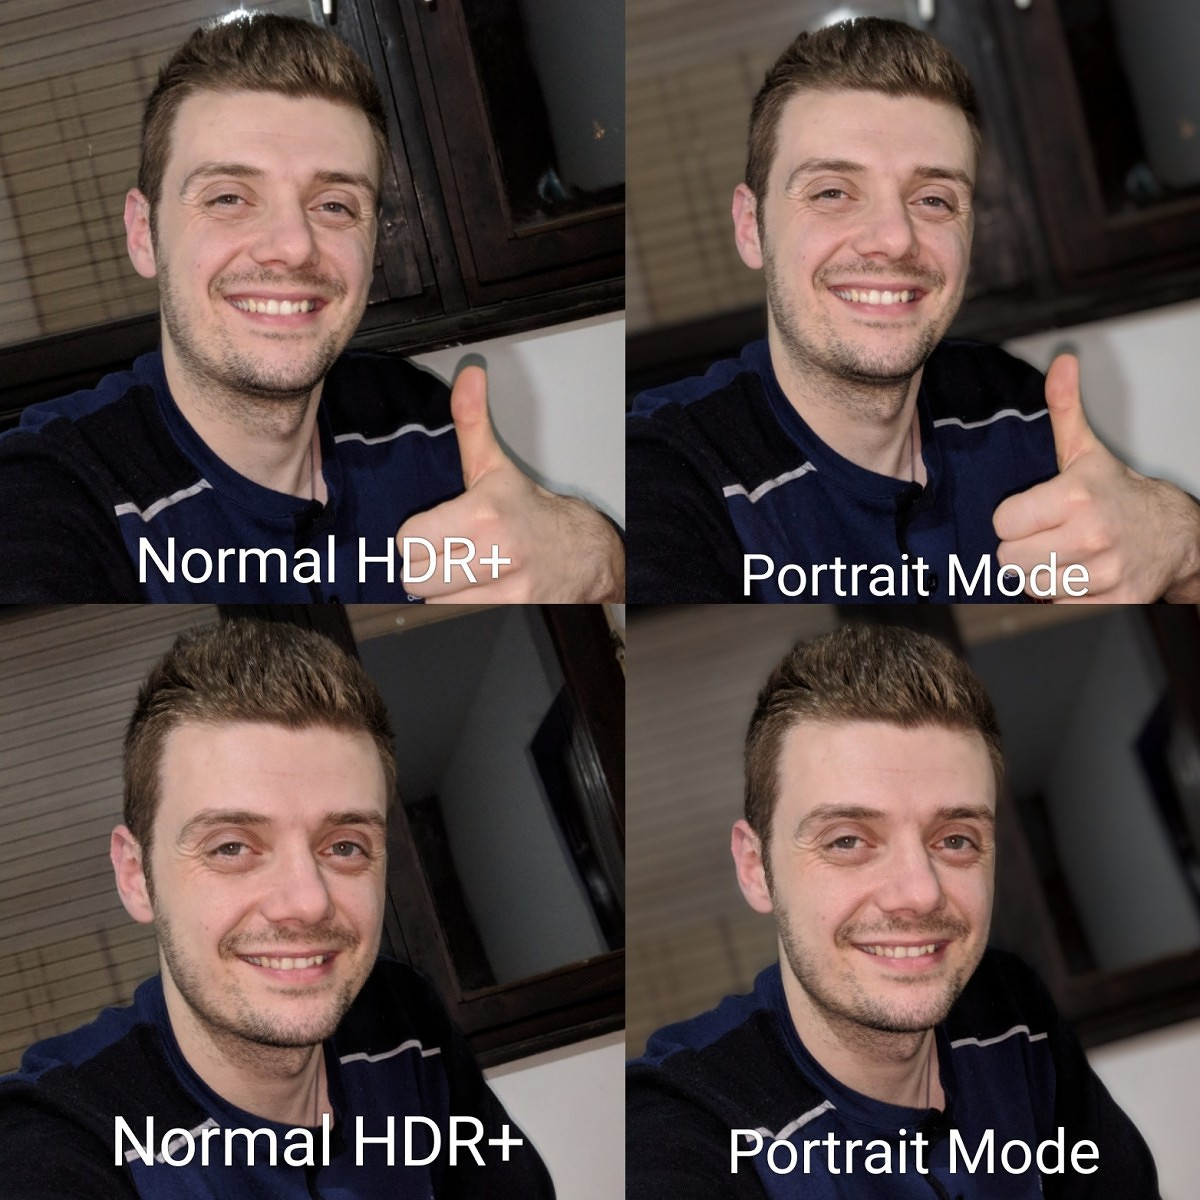 Pixel 2's Portrait mode being ported to non-Google devices as well